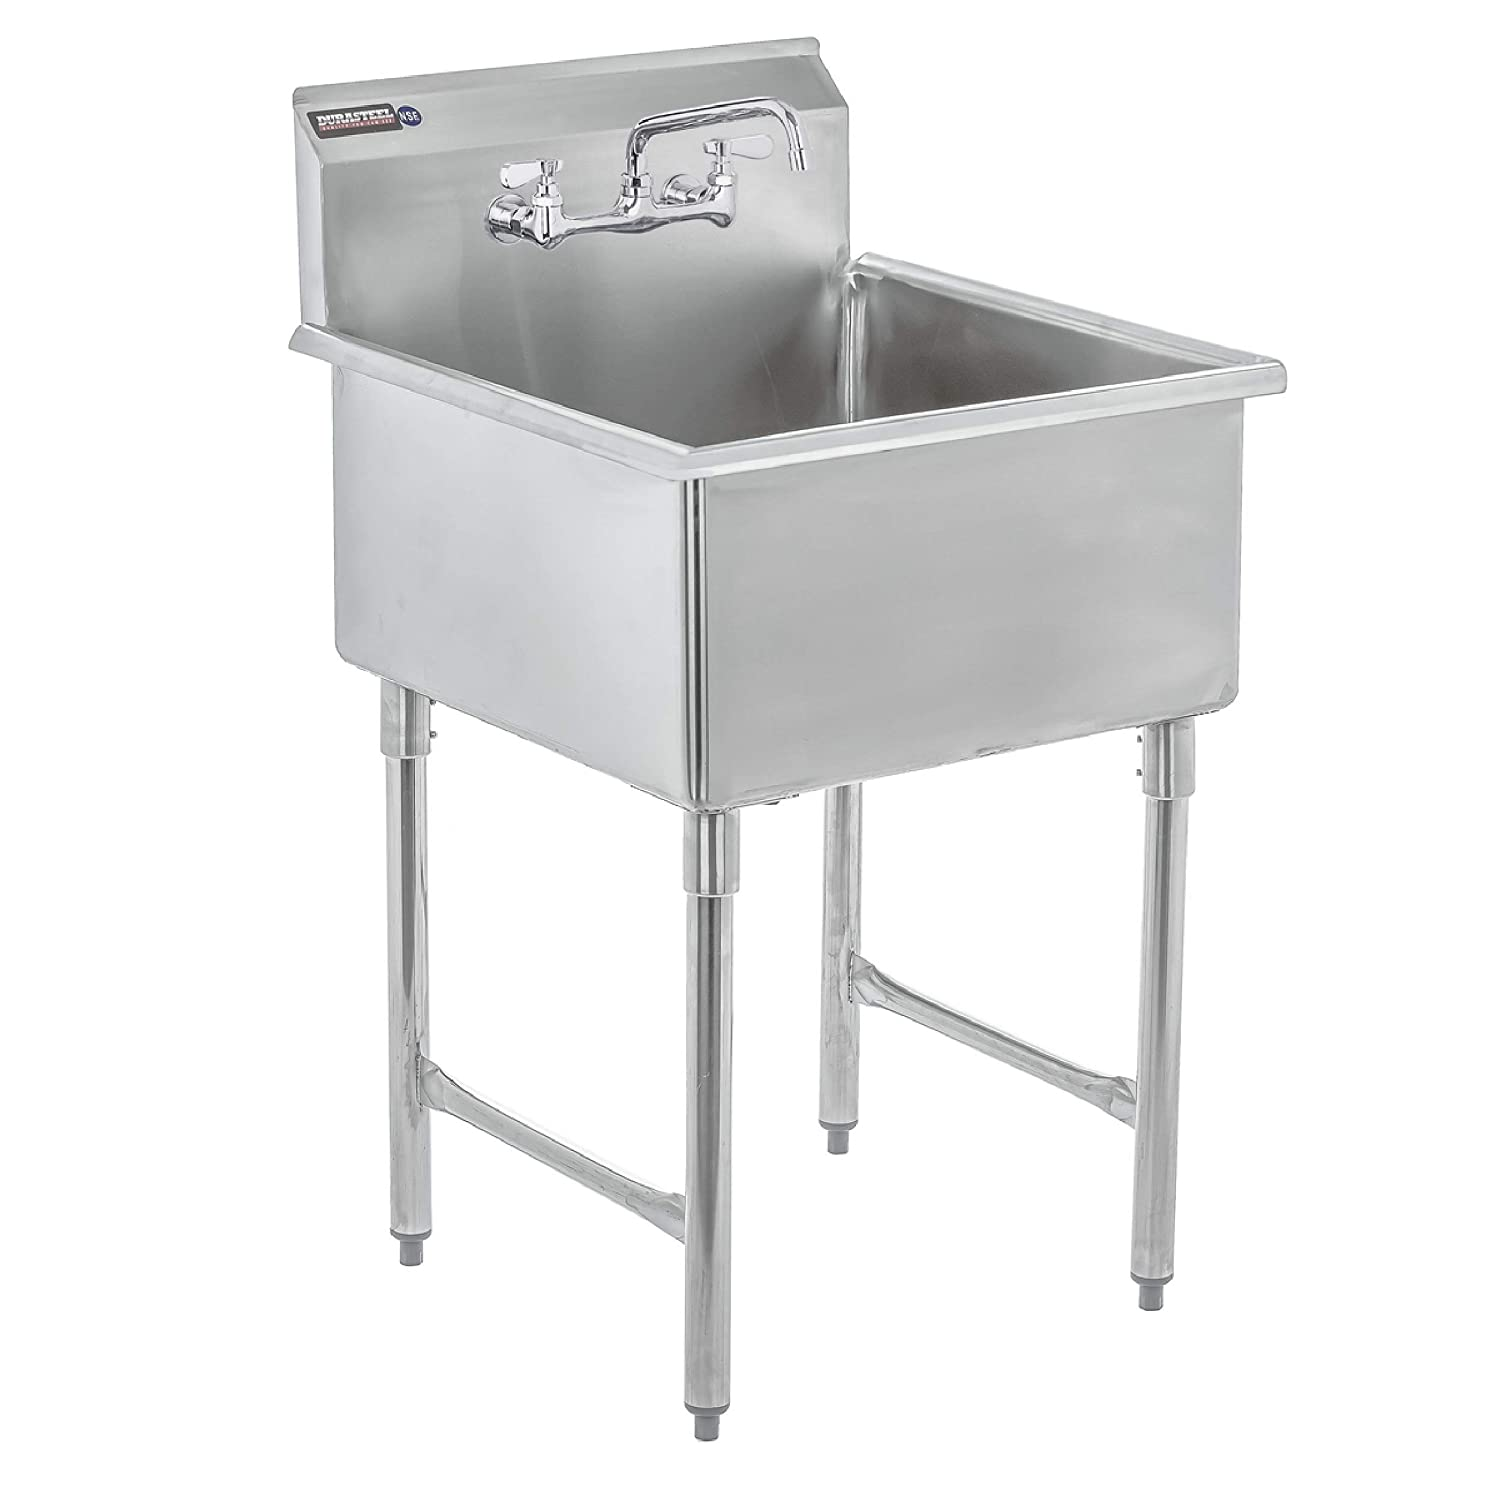 "DuraSteel Utility & Prep Sink - 1 Compartment Stainless Steel NSF Certified Easily Install - 24"" X 24"" Tub Size with 10"" Swivel Spout No Lead Faucet (Commercial, Food, Kitchen, Laundry, Backyard)"